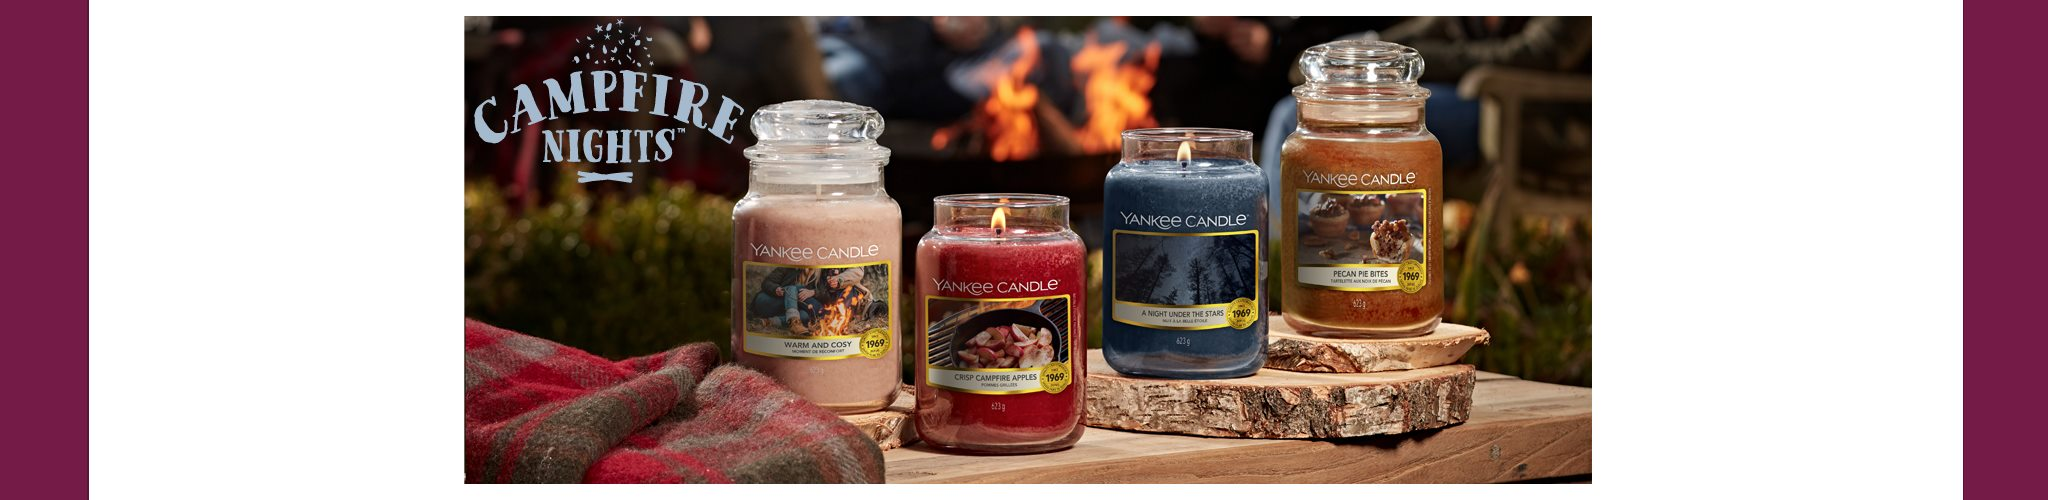 Yankee Candle Campfire Nights Collection